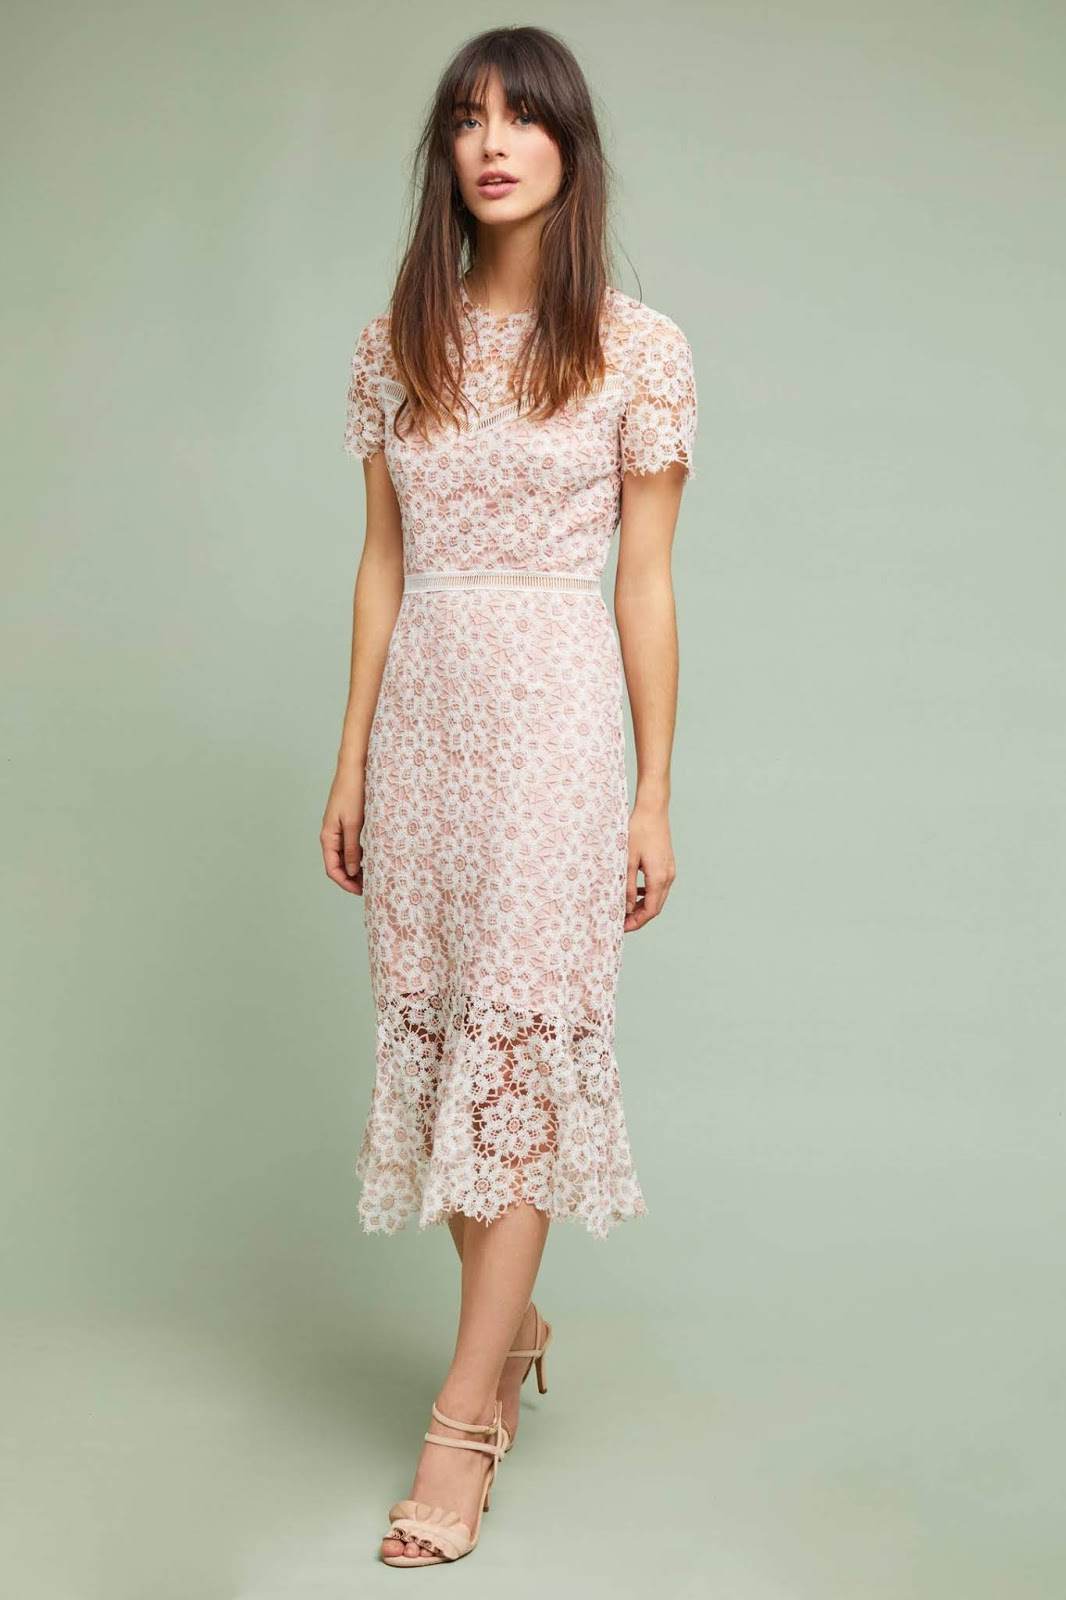 Anthropologie June 2018 Summer Tag Sale discussion thread :: Effortlessly with Roxy